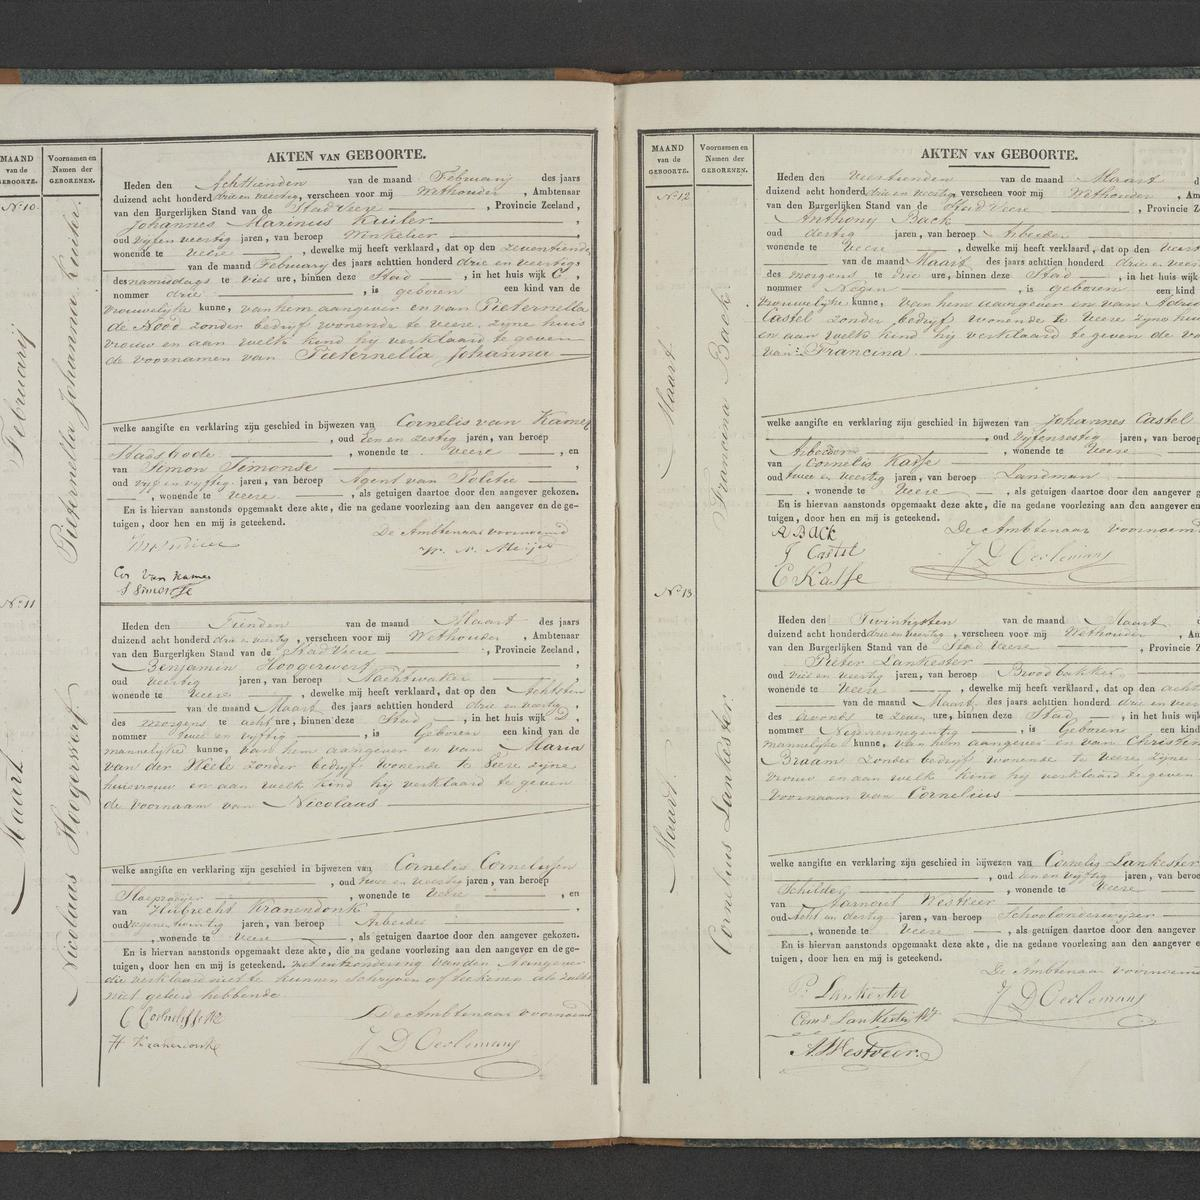 Civil registry of births, Veere, 1843, records 10-13